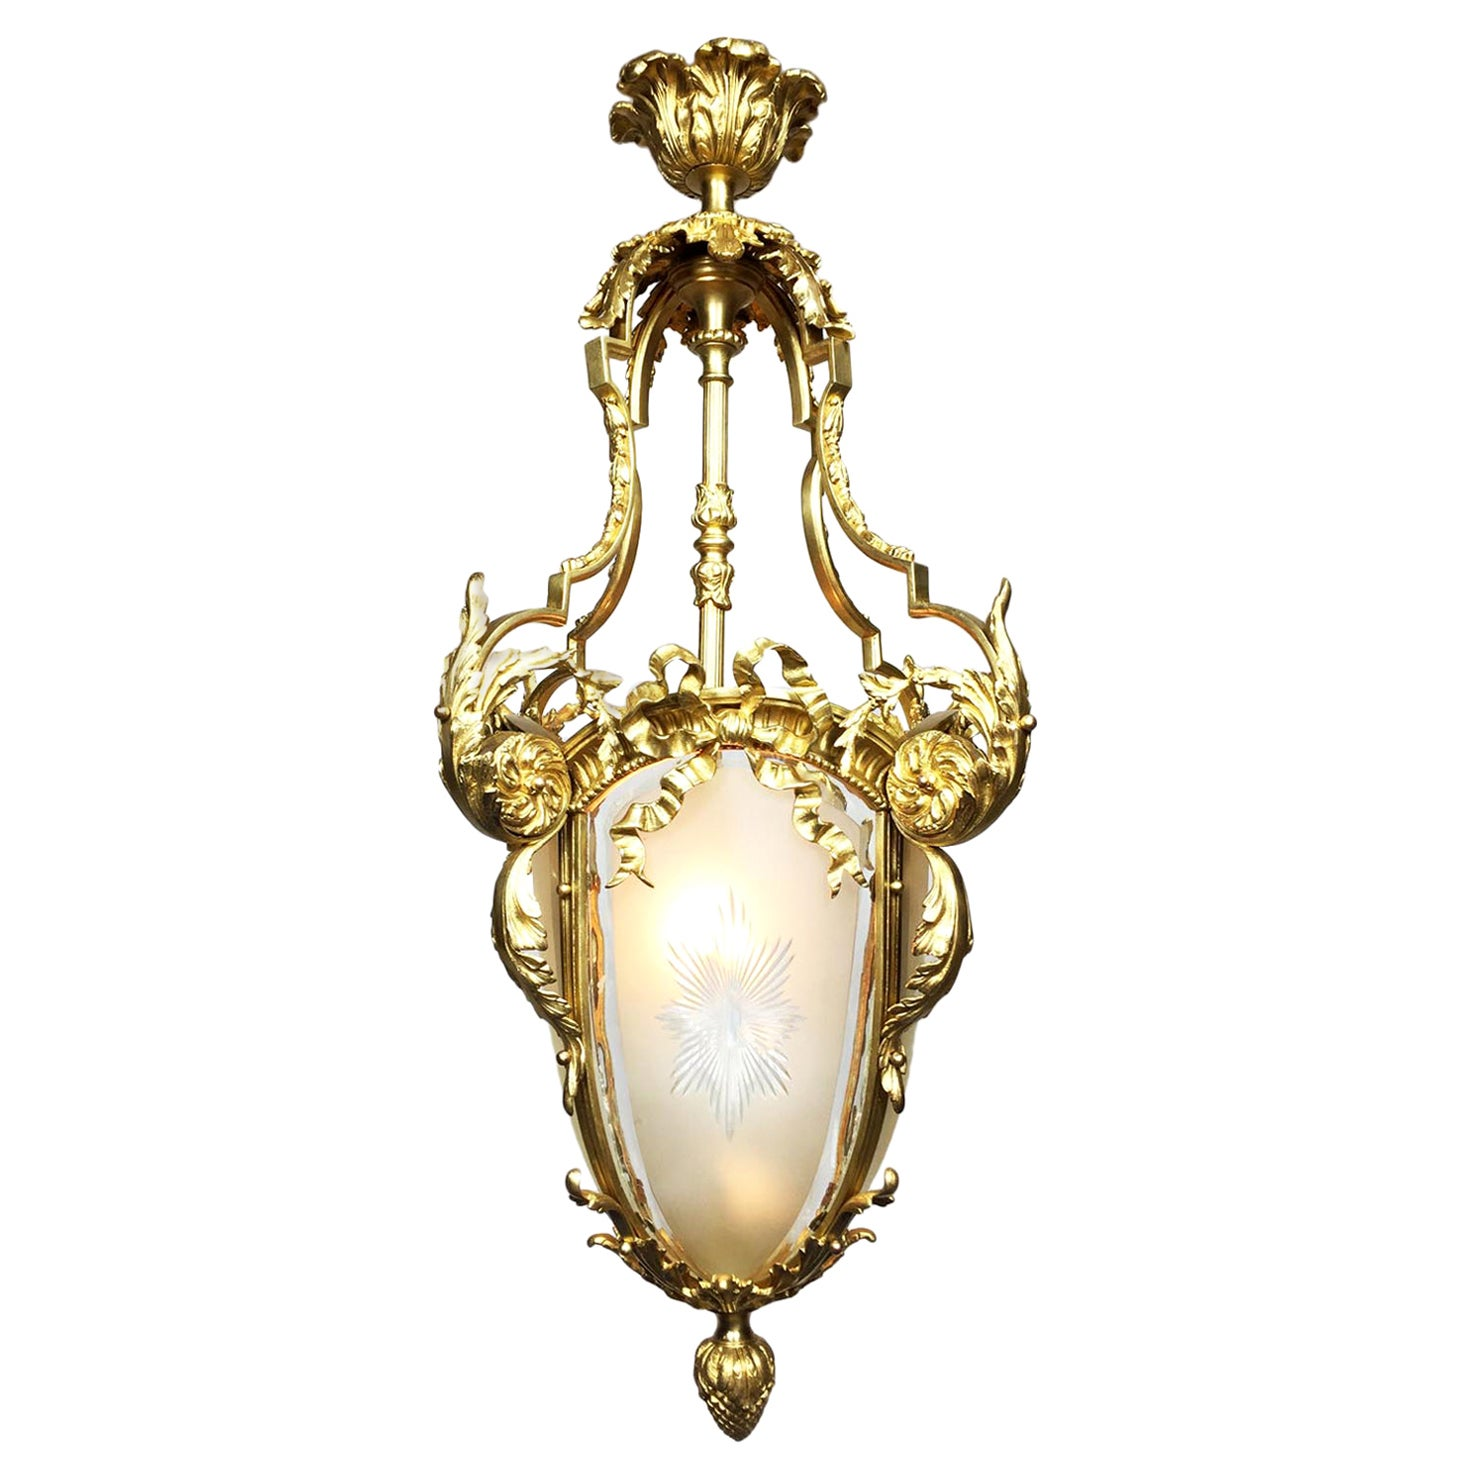 French, 19th-20th Century Louis XV Style Gilt Bronze and Glass Lantern